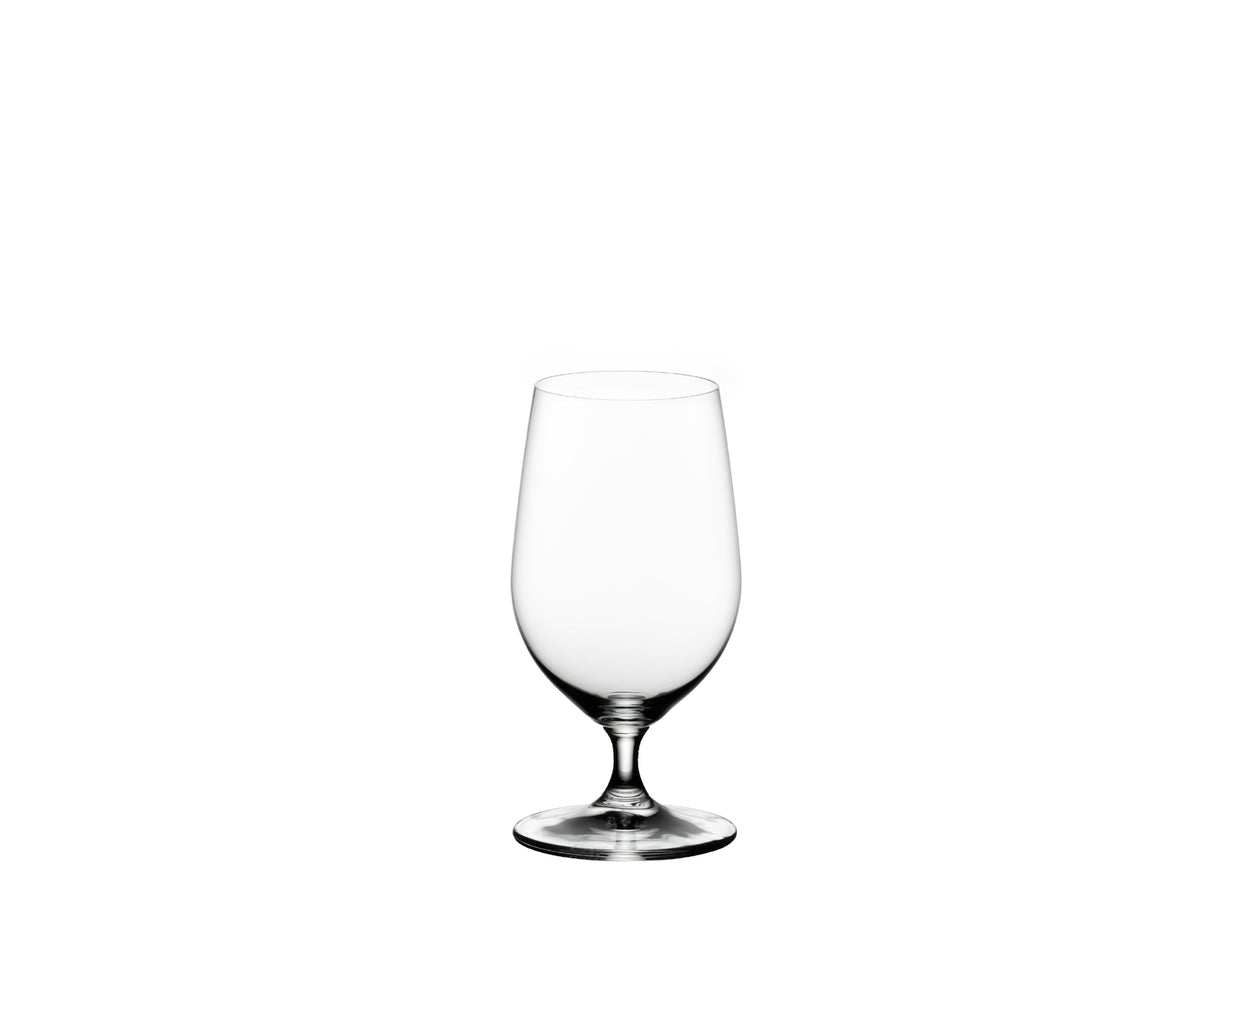 Riedel Ouverture Beer Glasses (Set of 2)